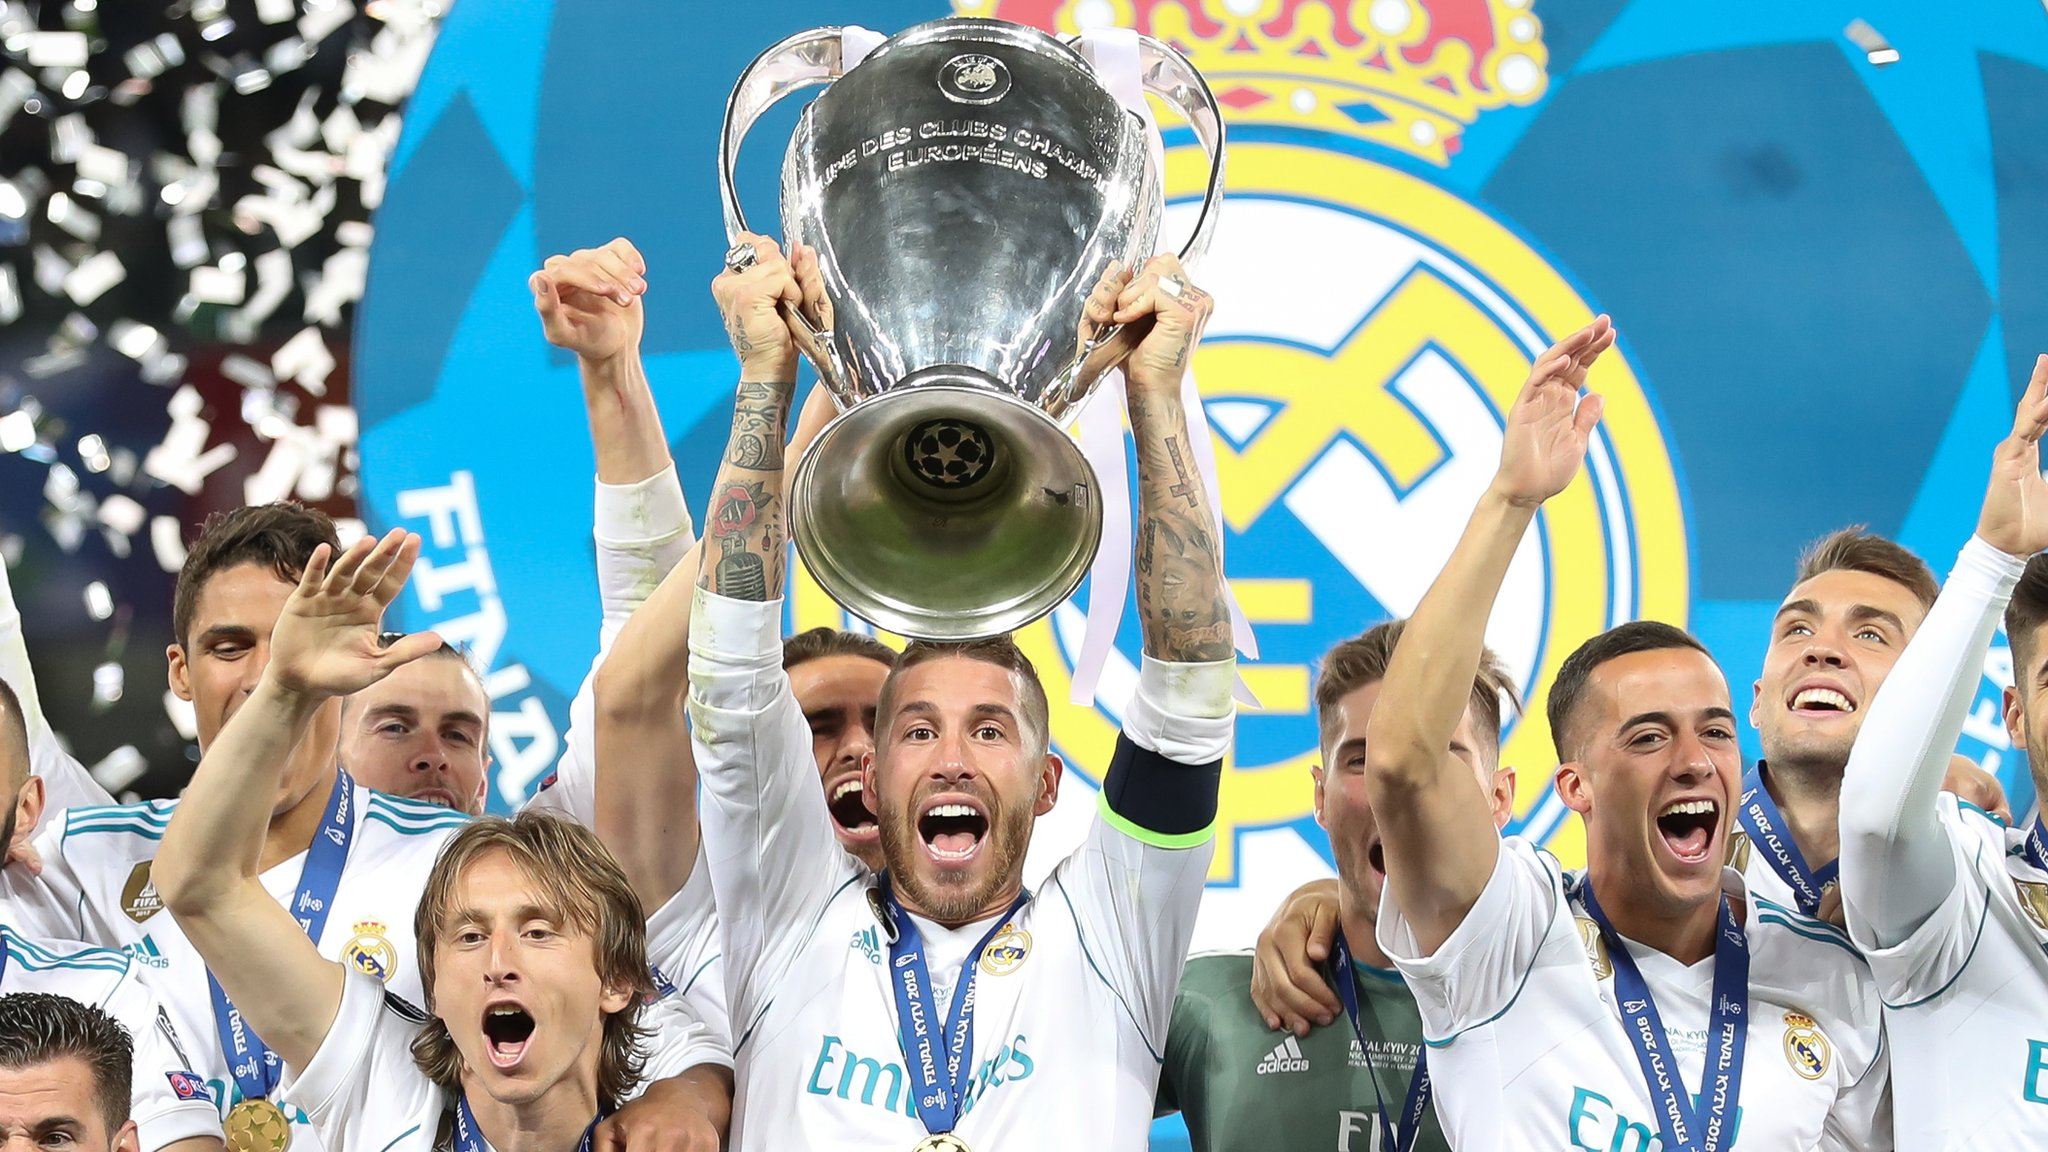 Champions League quiz: Can you name all 32 teams?